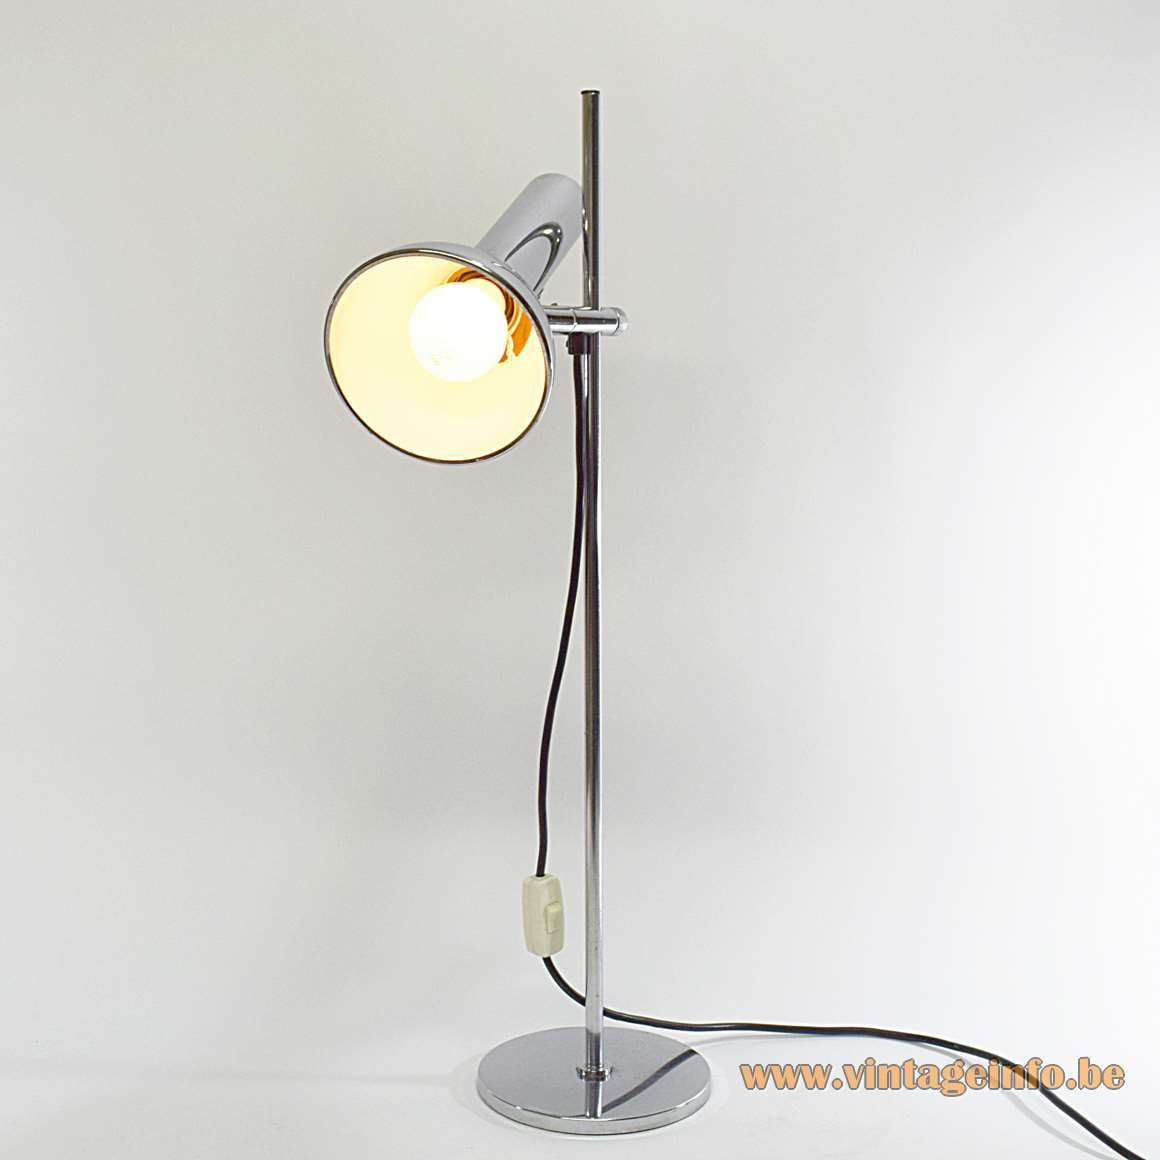 OMI Chromed Desk Light